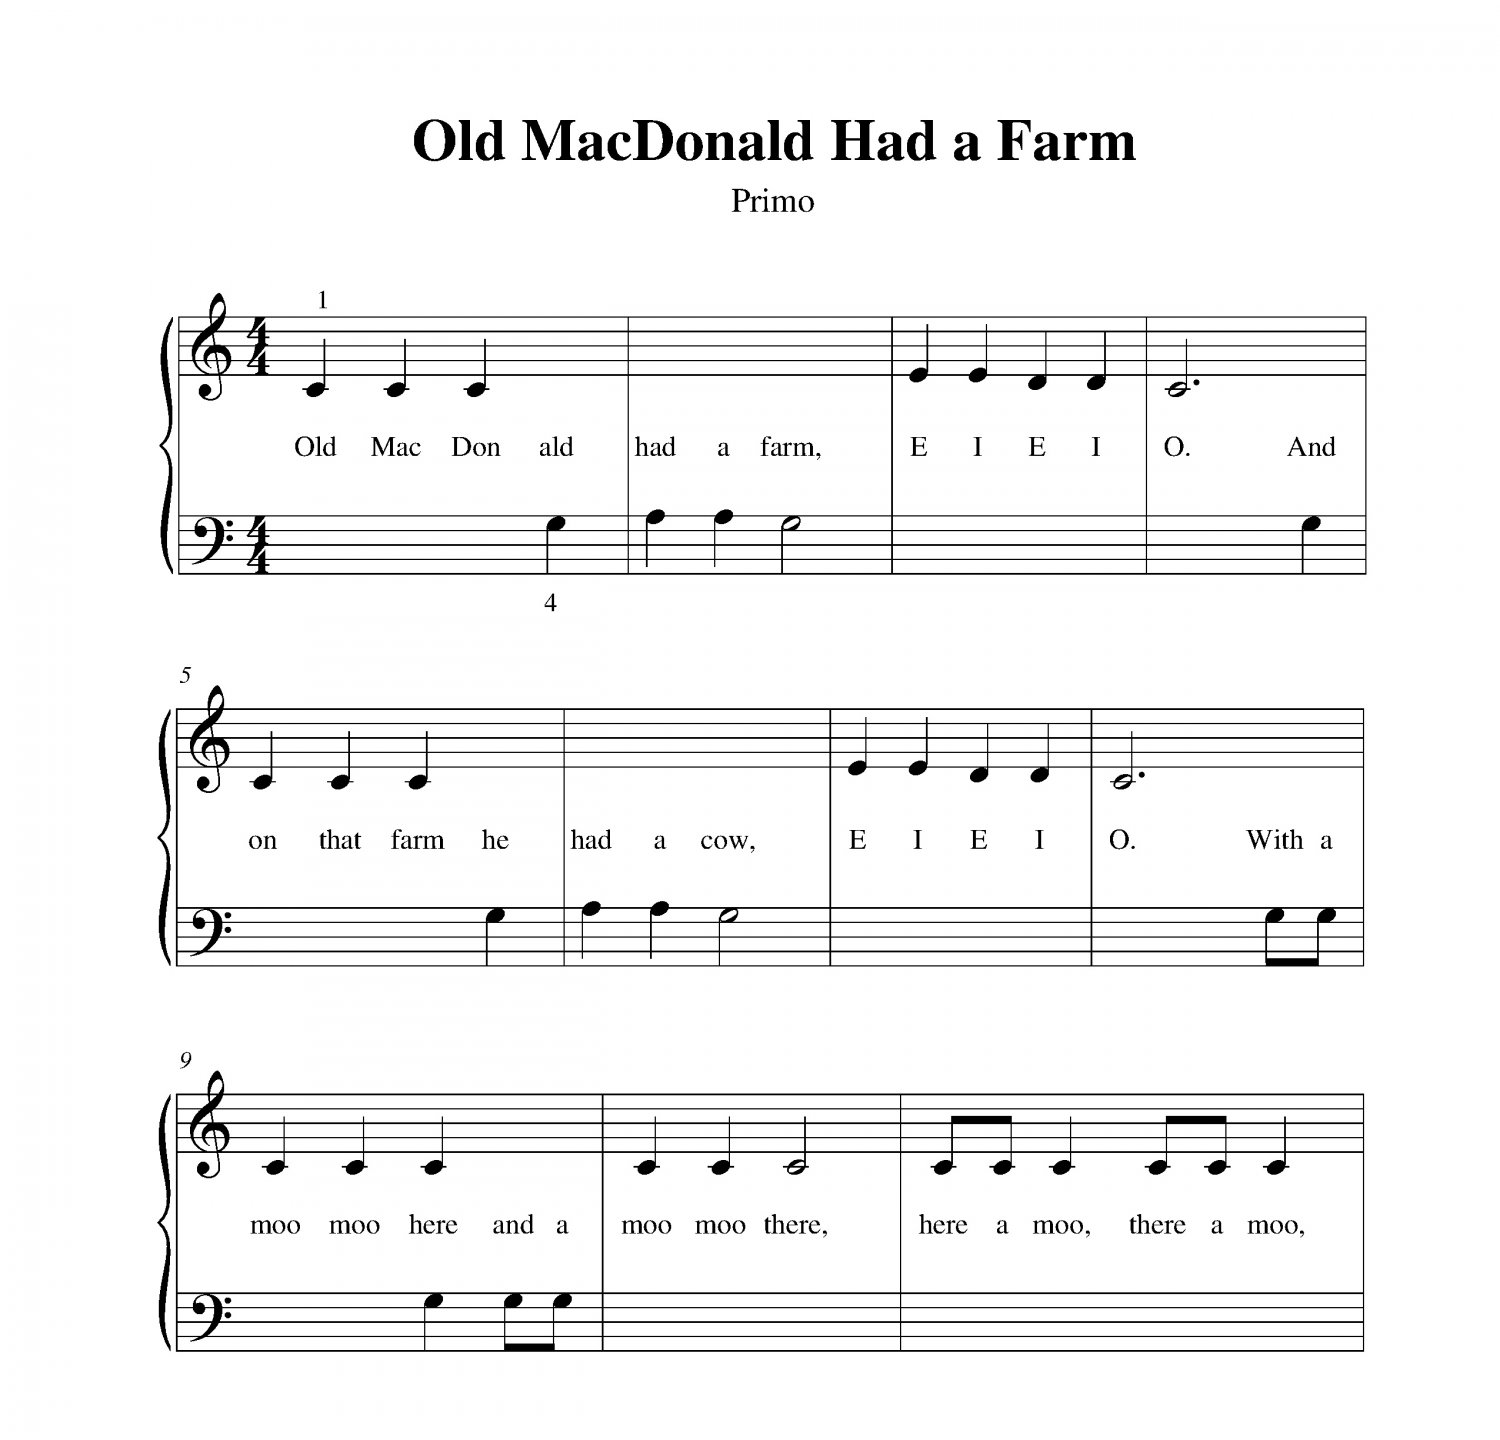 coloring pages old macdonald song - photo#24